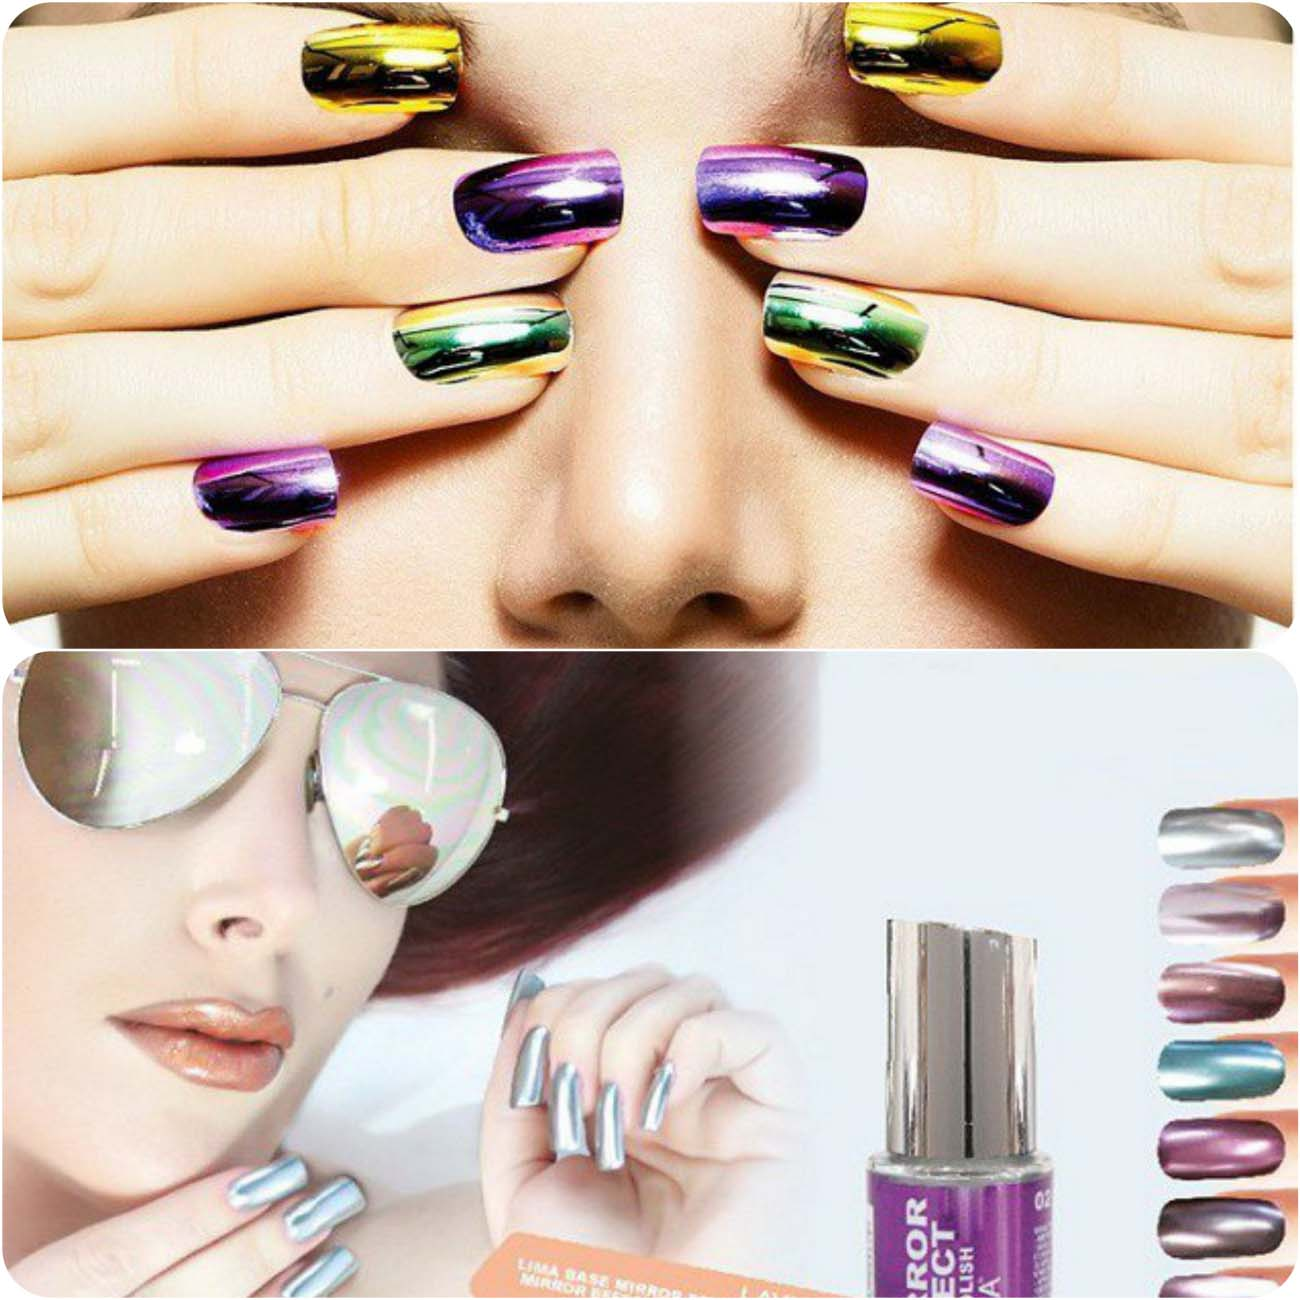 Best Dazzling Reflecting Nail Art Designs For Girls....styloplanet (6)